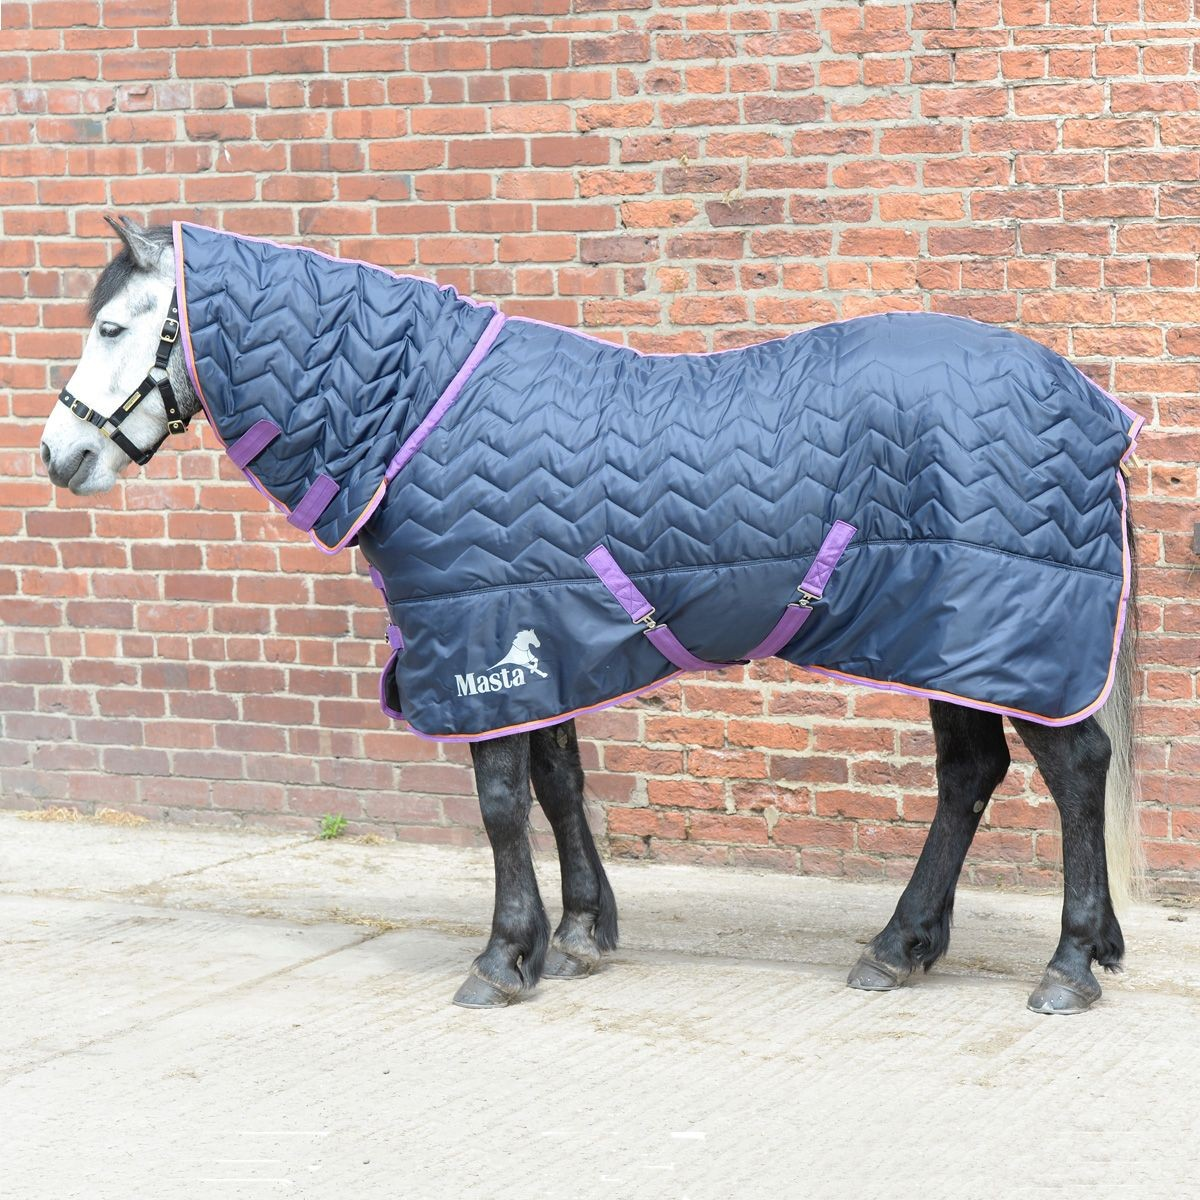 Masta Avante 120g Fixed Neck Stable Rug  - Thomas Irving's equestrian and accessories store  Masta Avante 120g Fixed Neck Stable Rug